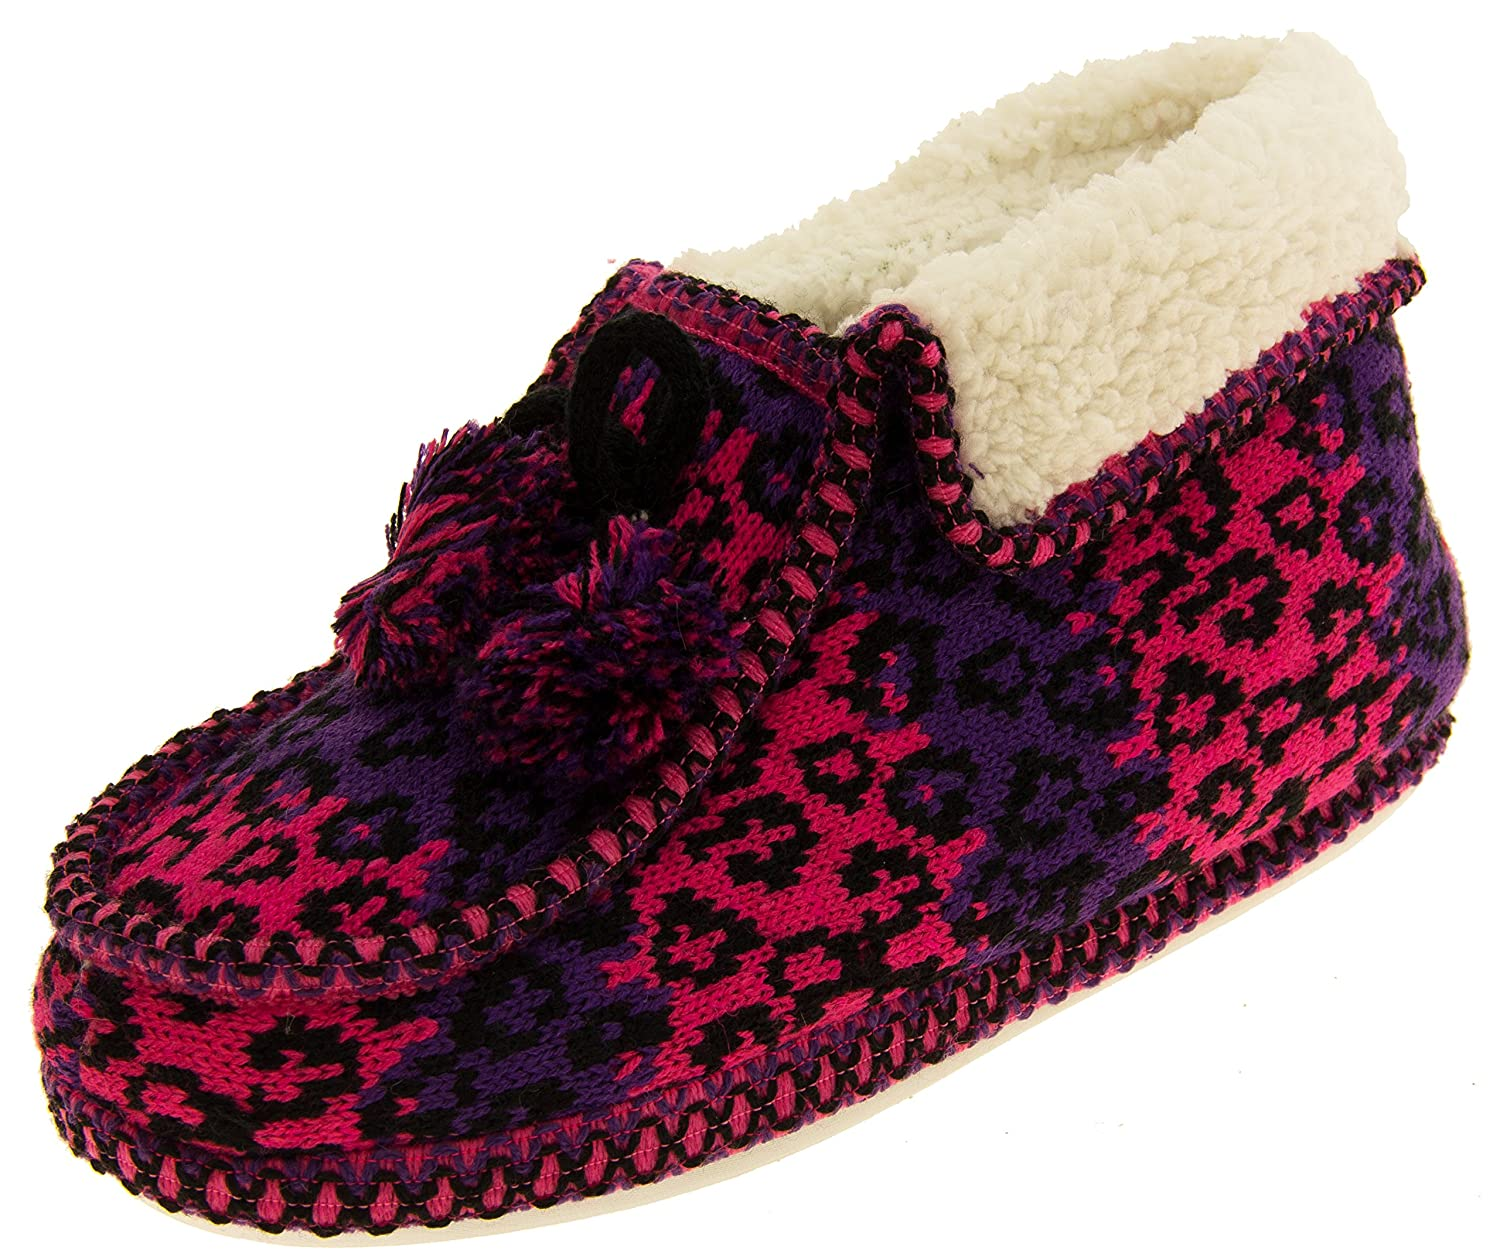 Femmes Coolers Coolers Bottes Winter Faux Fourrure Fourrure Fourrure Fairisle Bottes Rose 2a6181c - jessicalock.space